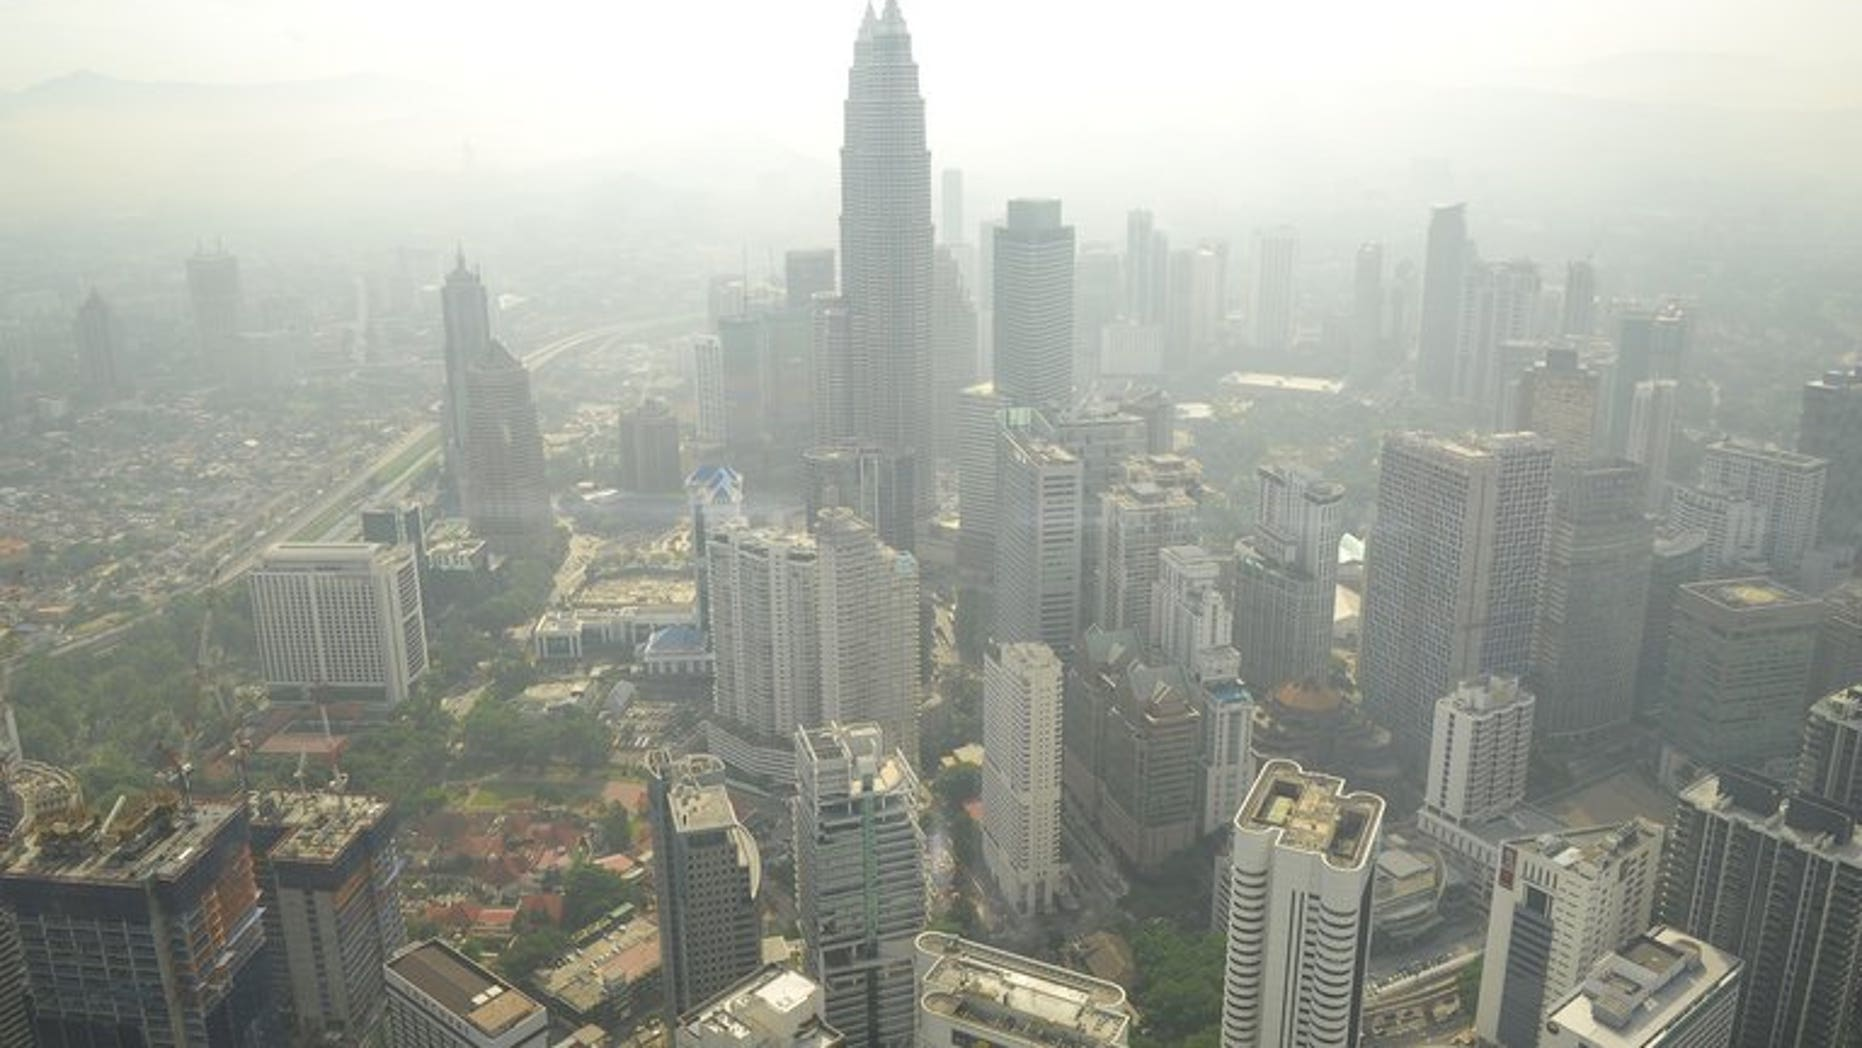 The Kuala Lumpur skyline is seen covered by haze, on June 27, 2013. Haze has blanketed parts of Malaysia, weeks after the region suffered its worst pollution from forest fires in Indonesia in more than a decade.